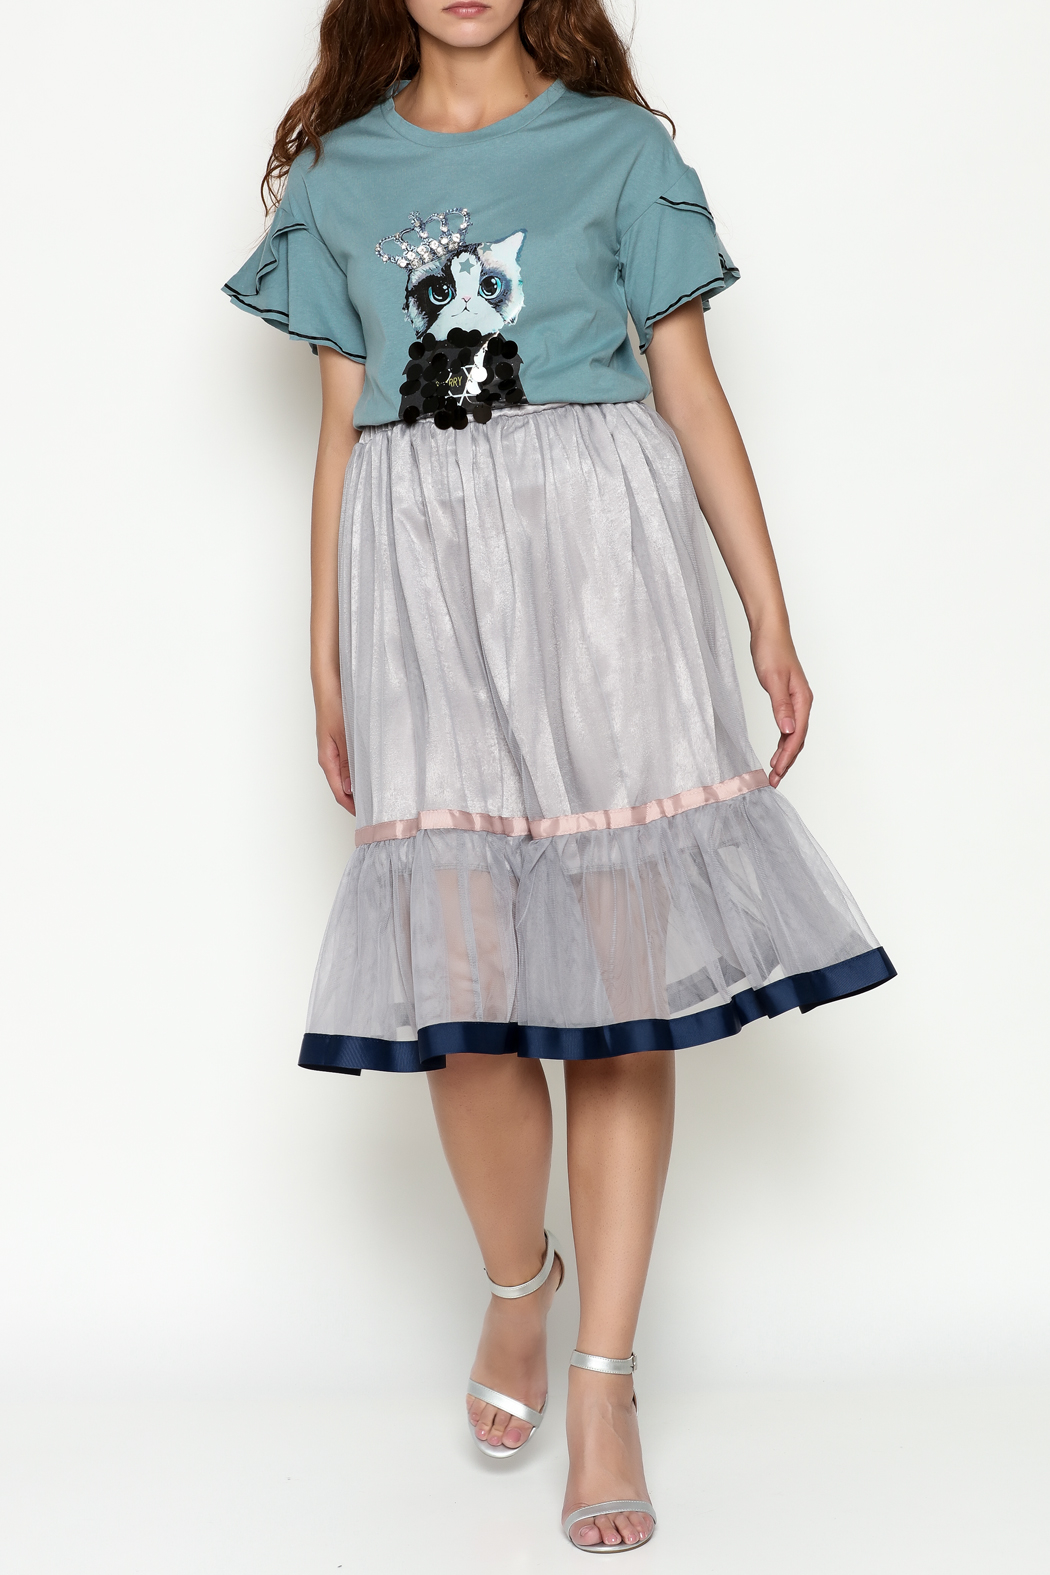 THINK CLOSET Princess Skirt - Side Cropped Image